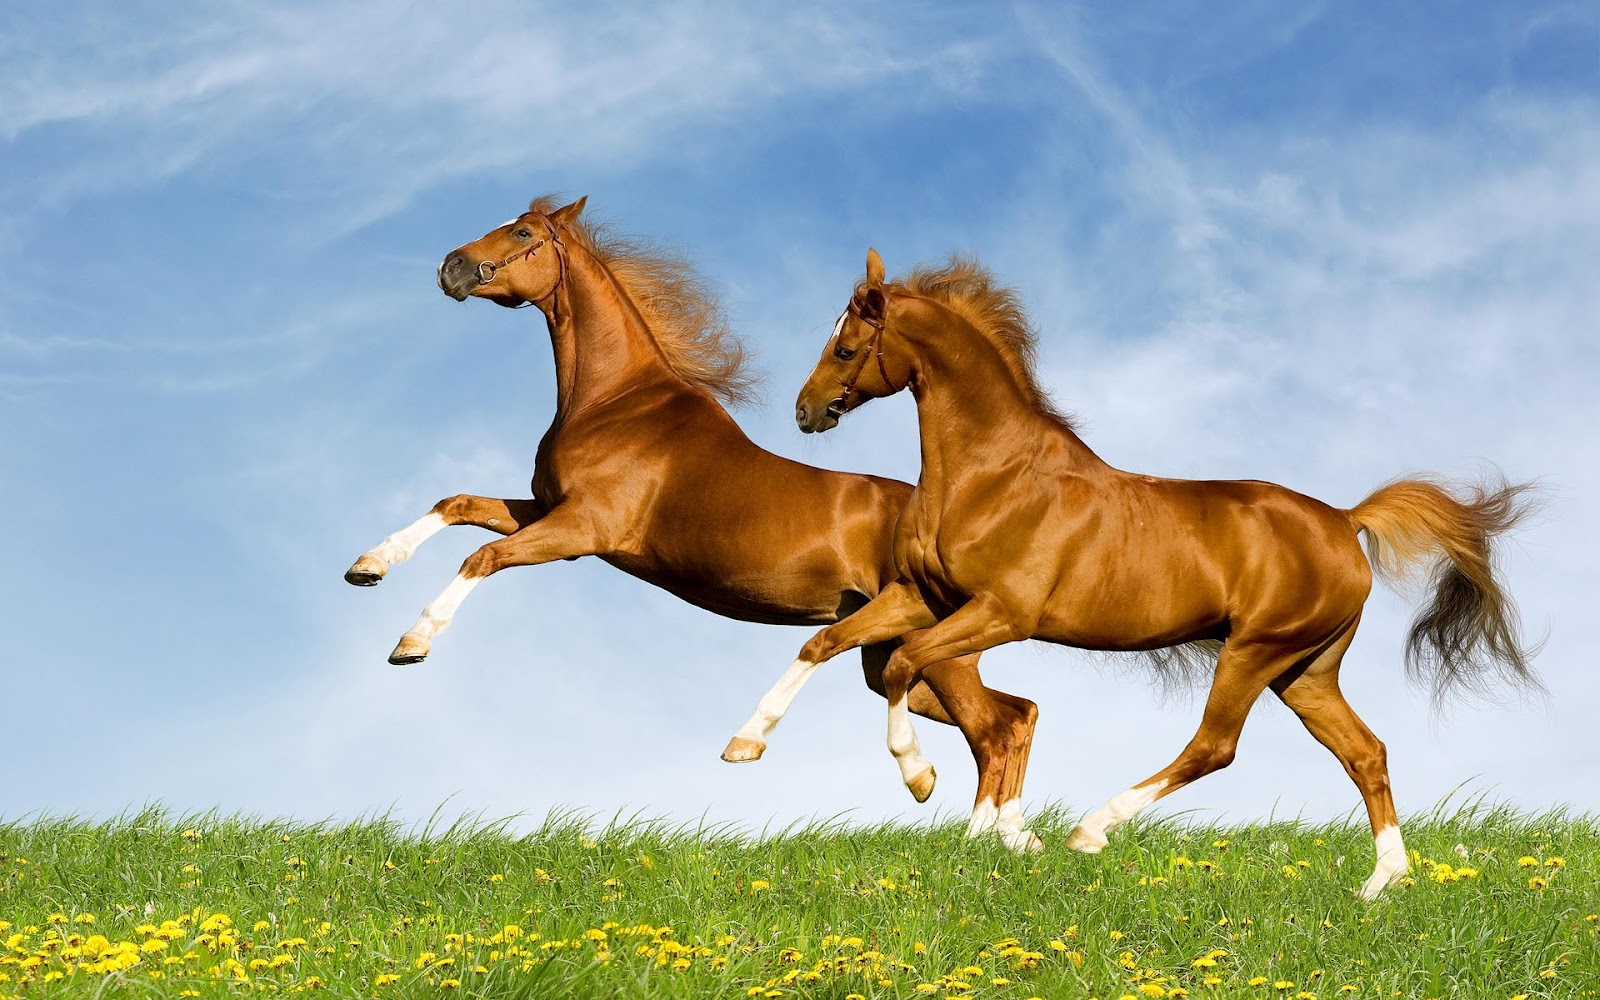 Great   Wallpaper Horse Lightning - horse+wallpapers+hd+(11)  Perfect Image Reference_95839.jpg